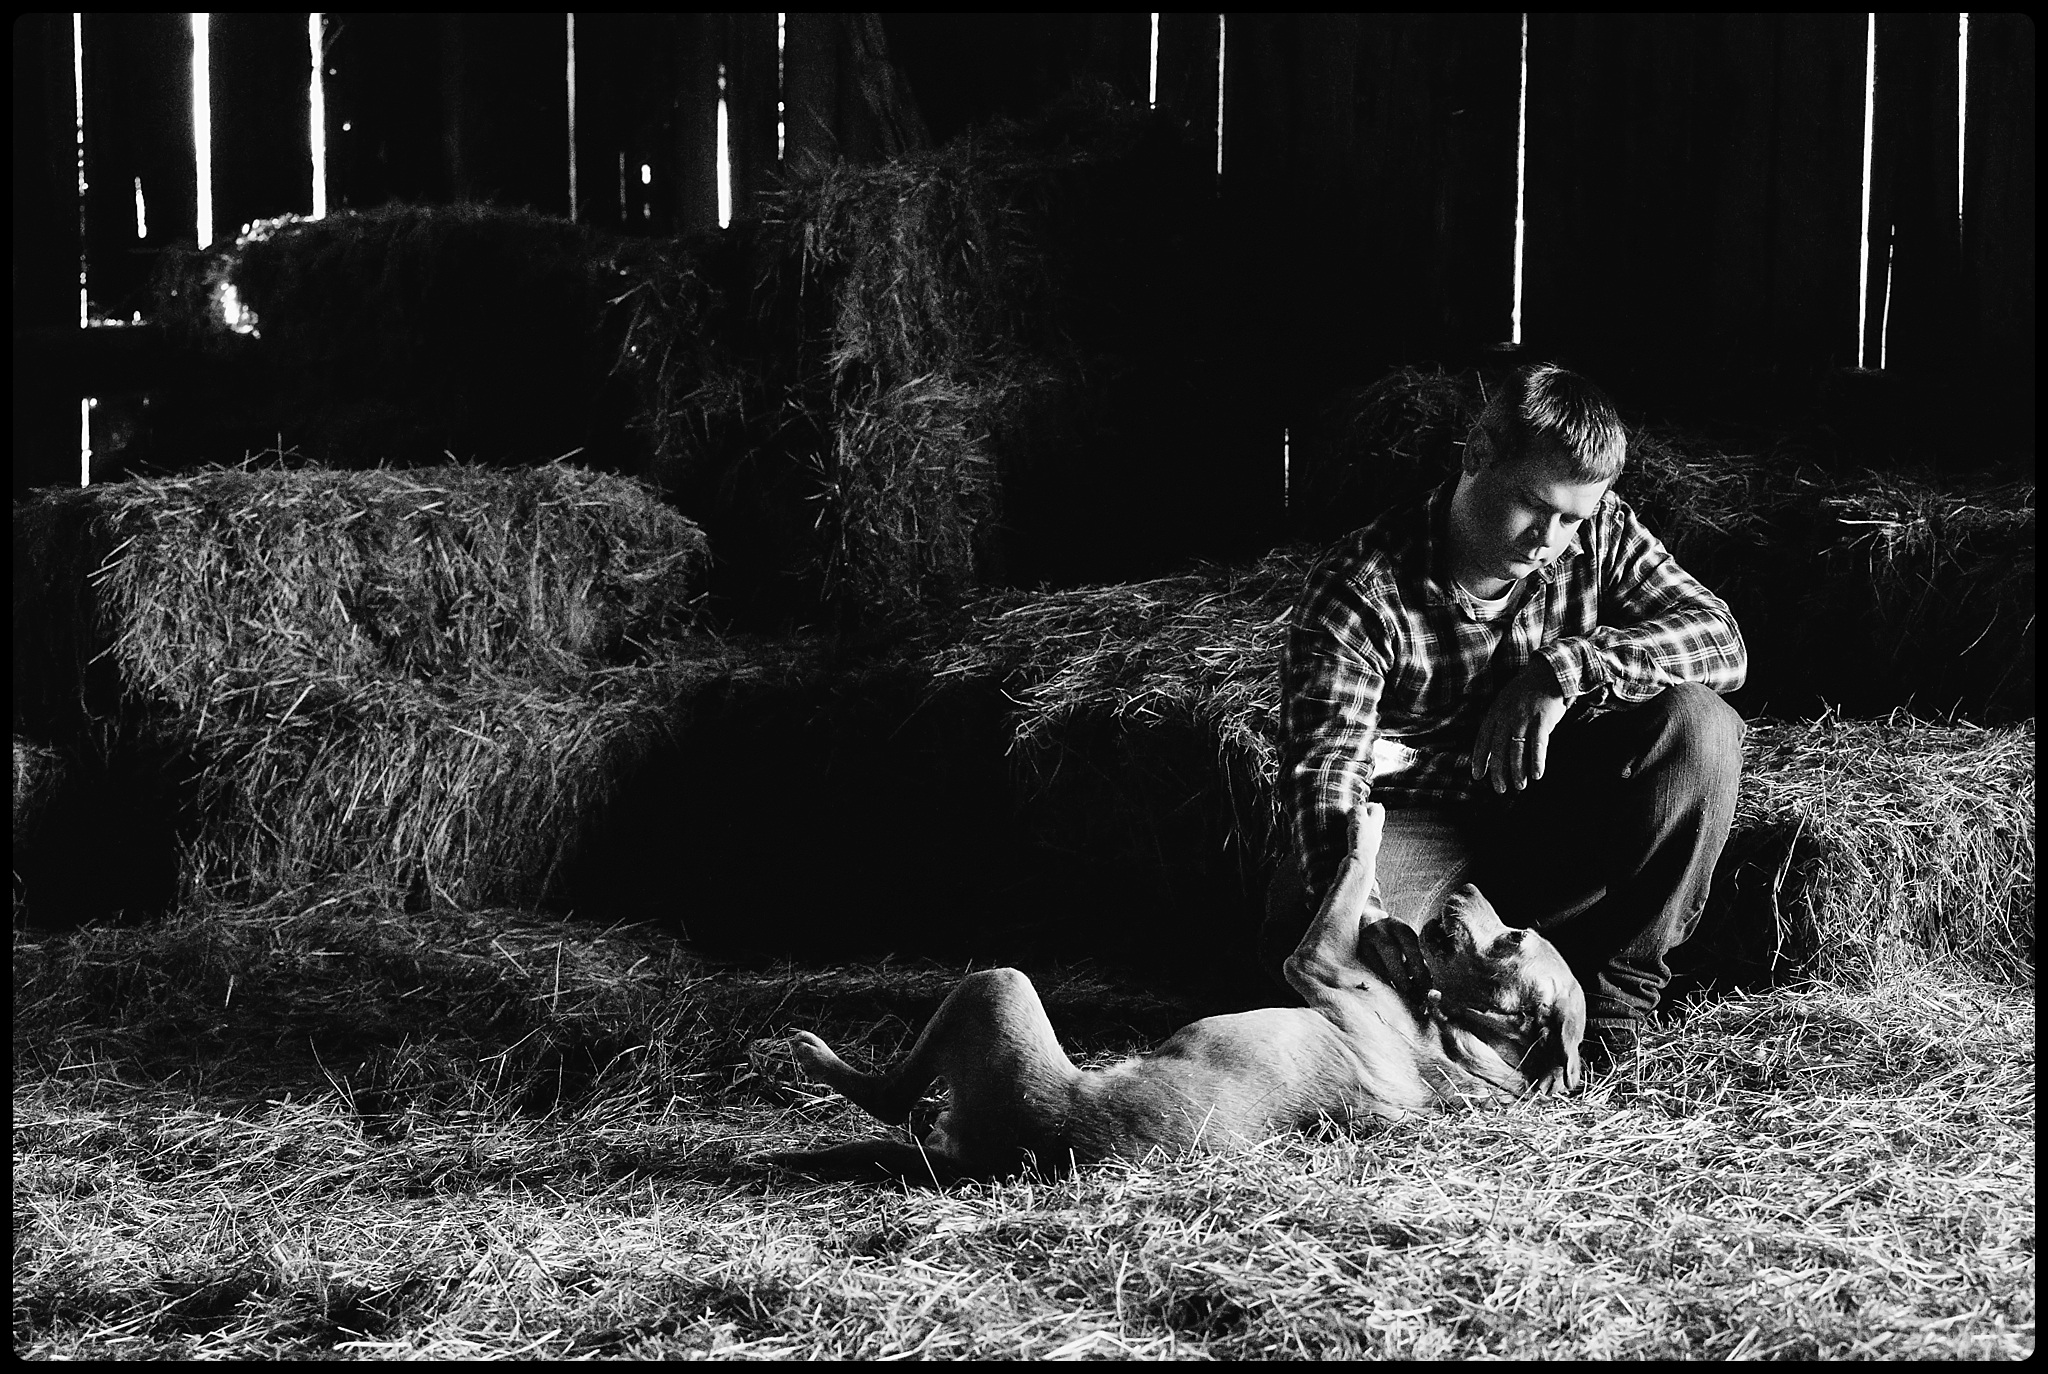 Man rubs dogs tummy in a barn.